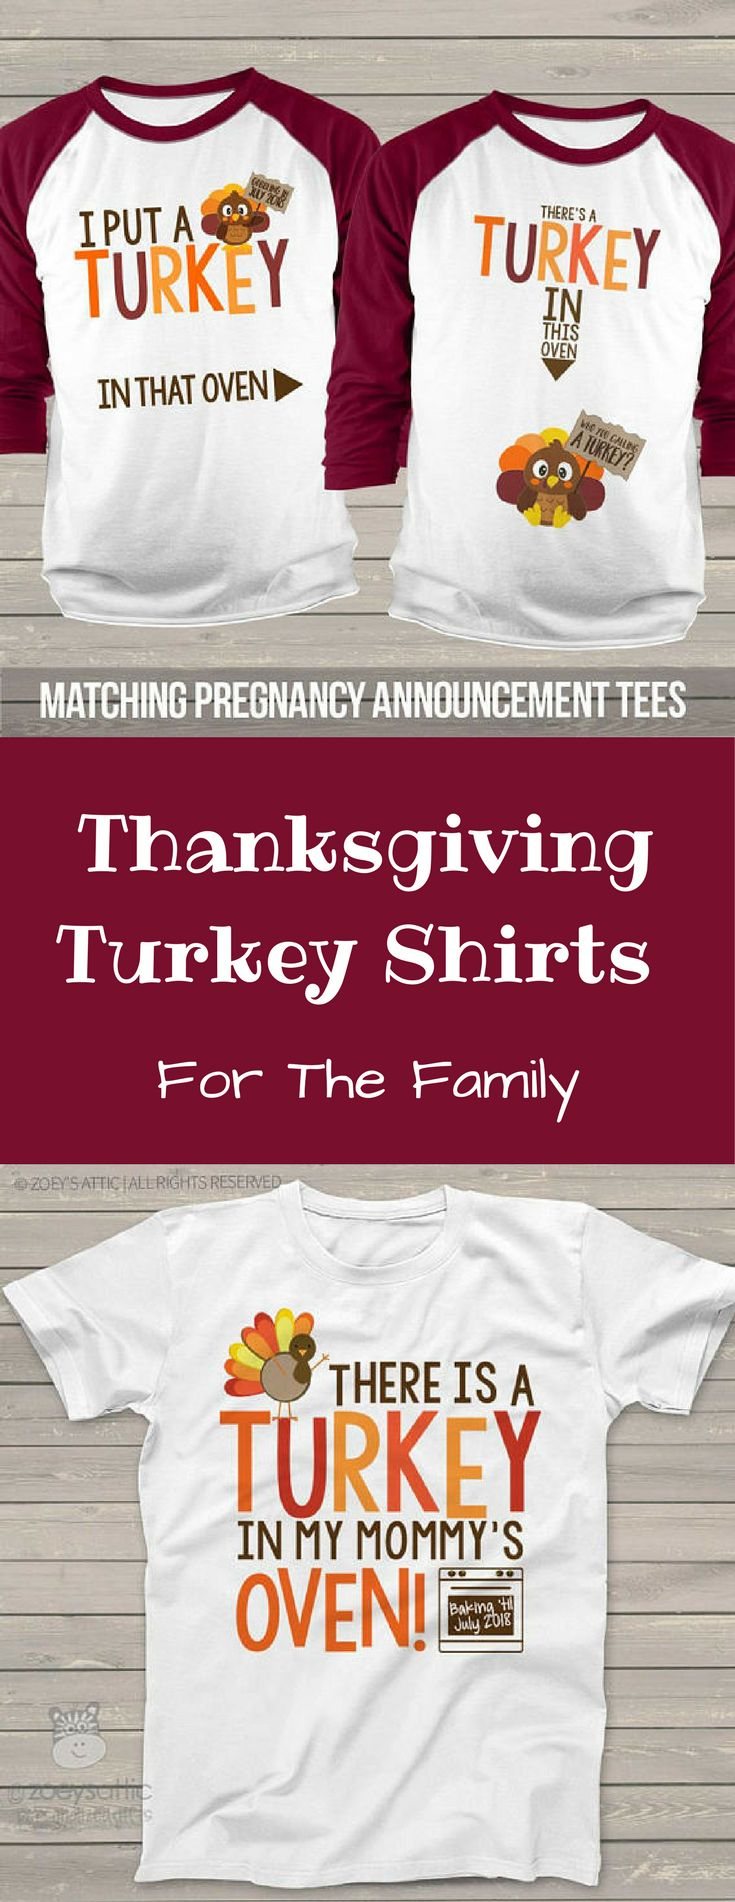 Turkey Thanksgiving Shirts For The Family. This Is A Cute Way To Do A Baby Announcement! #turkeyshirt #thanksgivingshirt #babyannouncement #etsyshirt #commisionlink